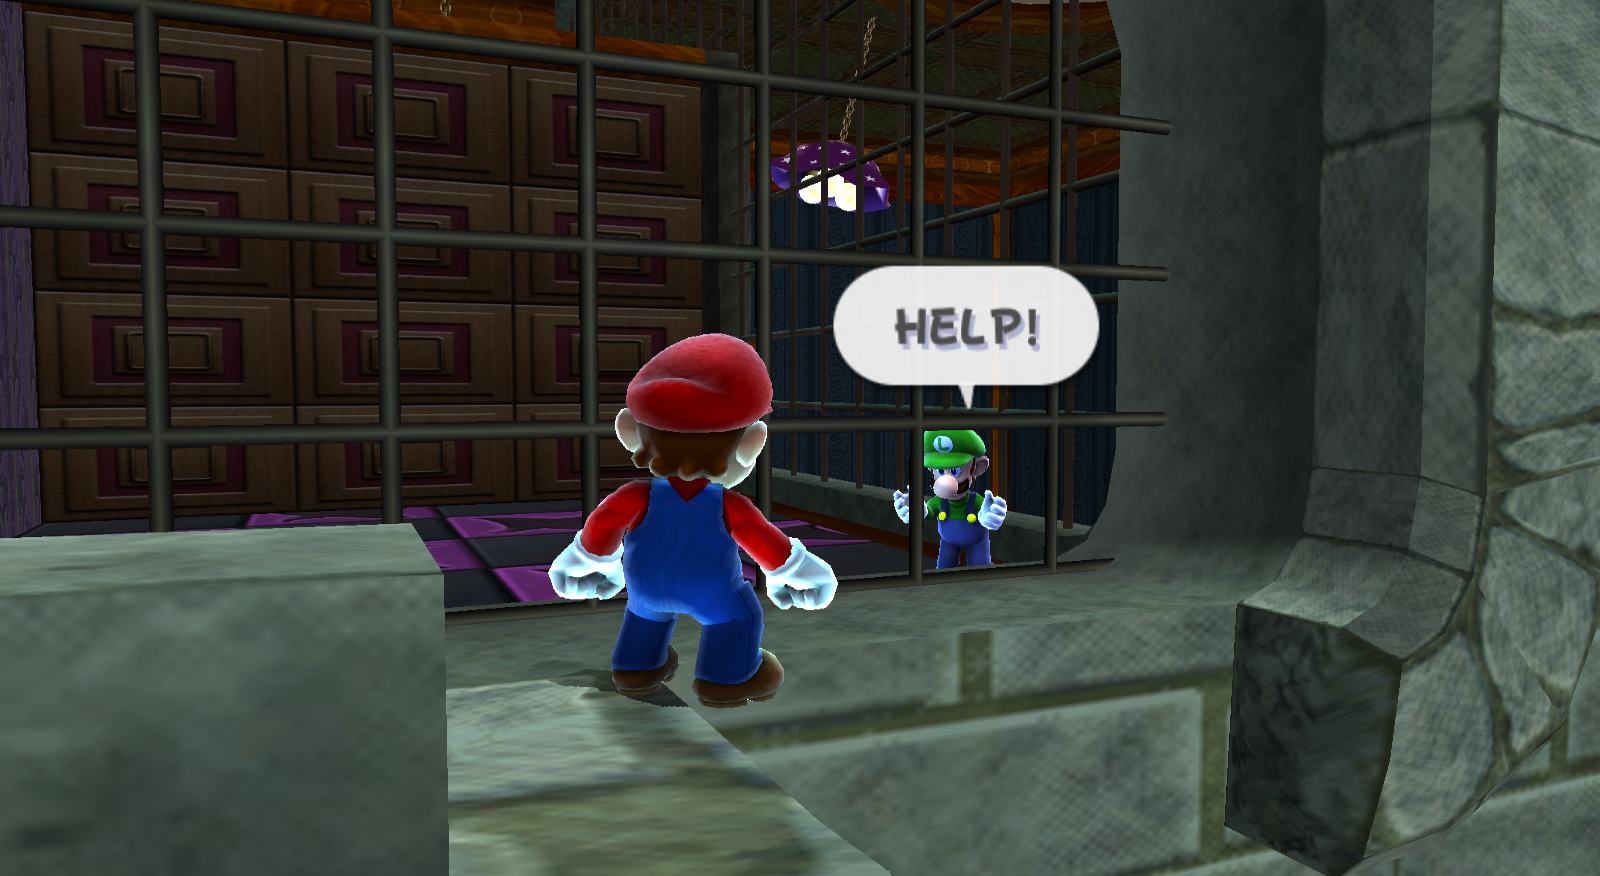 https://www.mariowiki.it/images/9/9b/Luigicaged.png